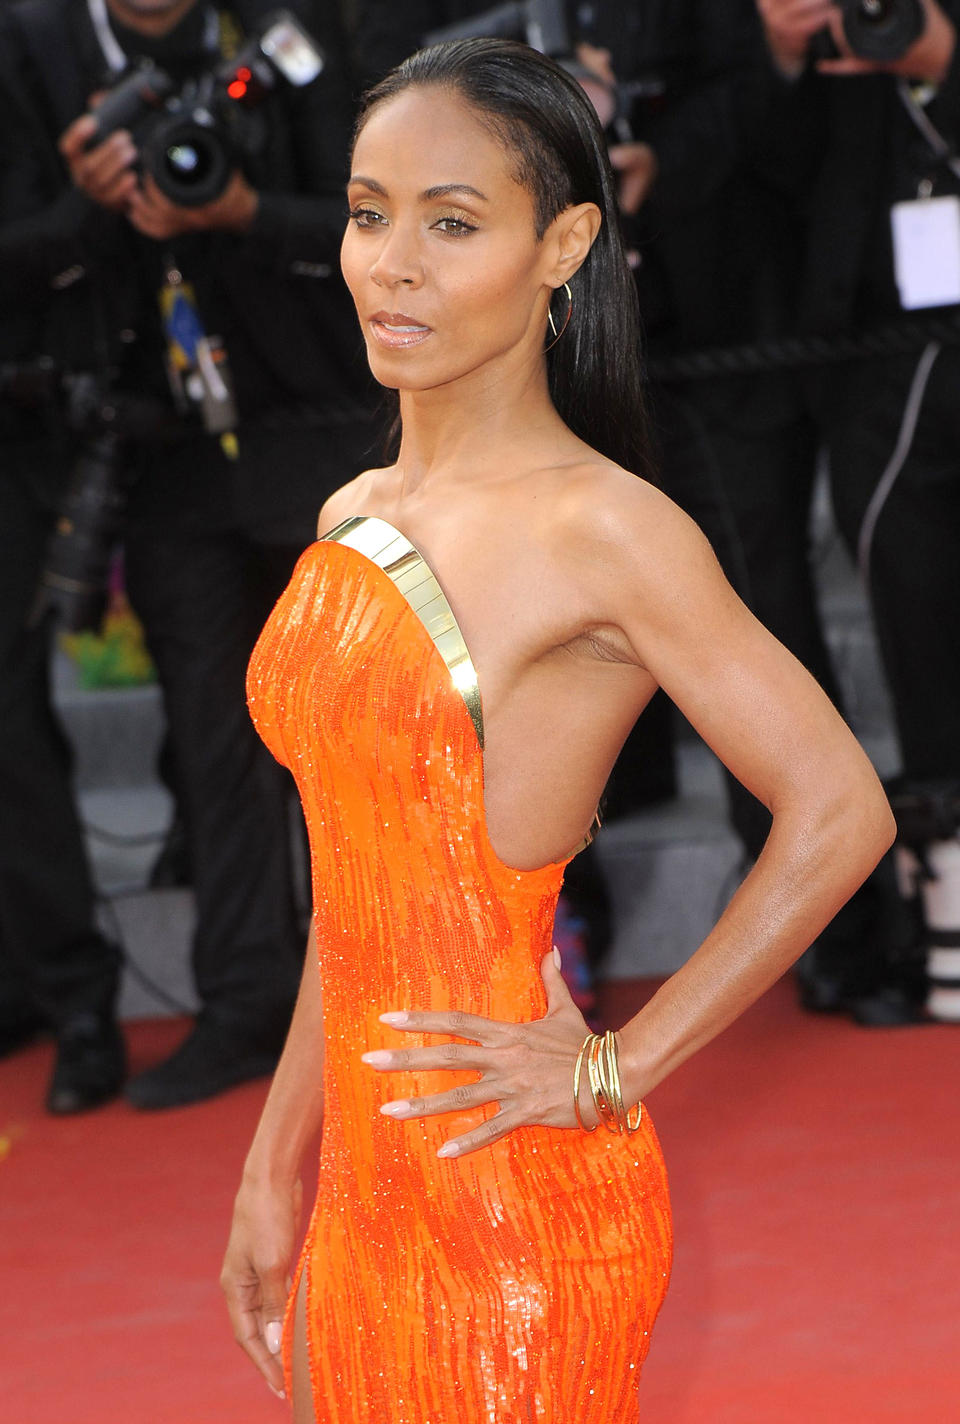 jada pinkett smith young